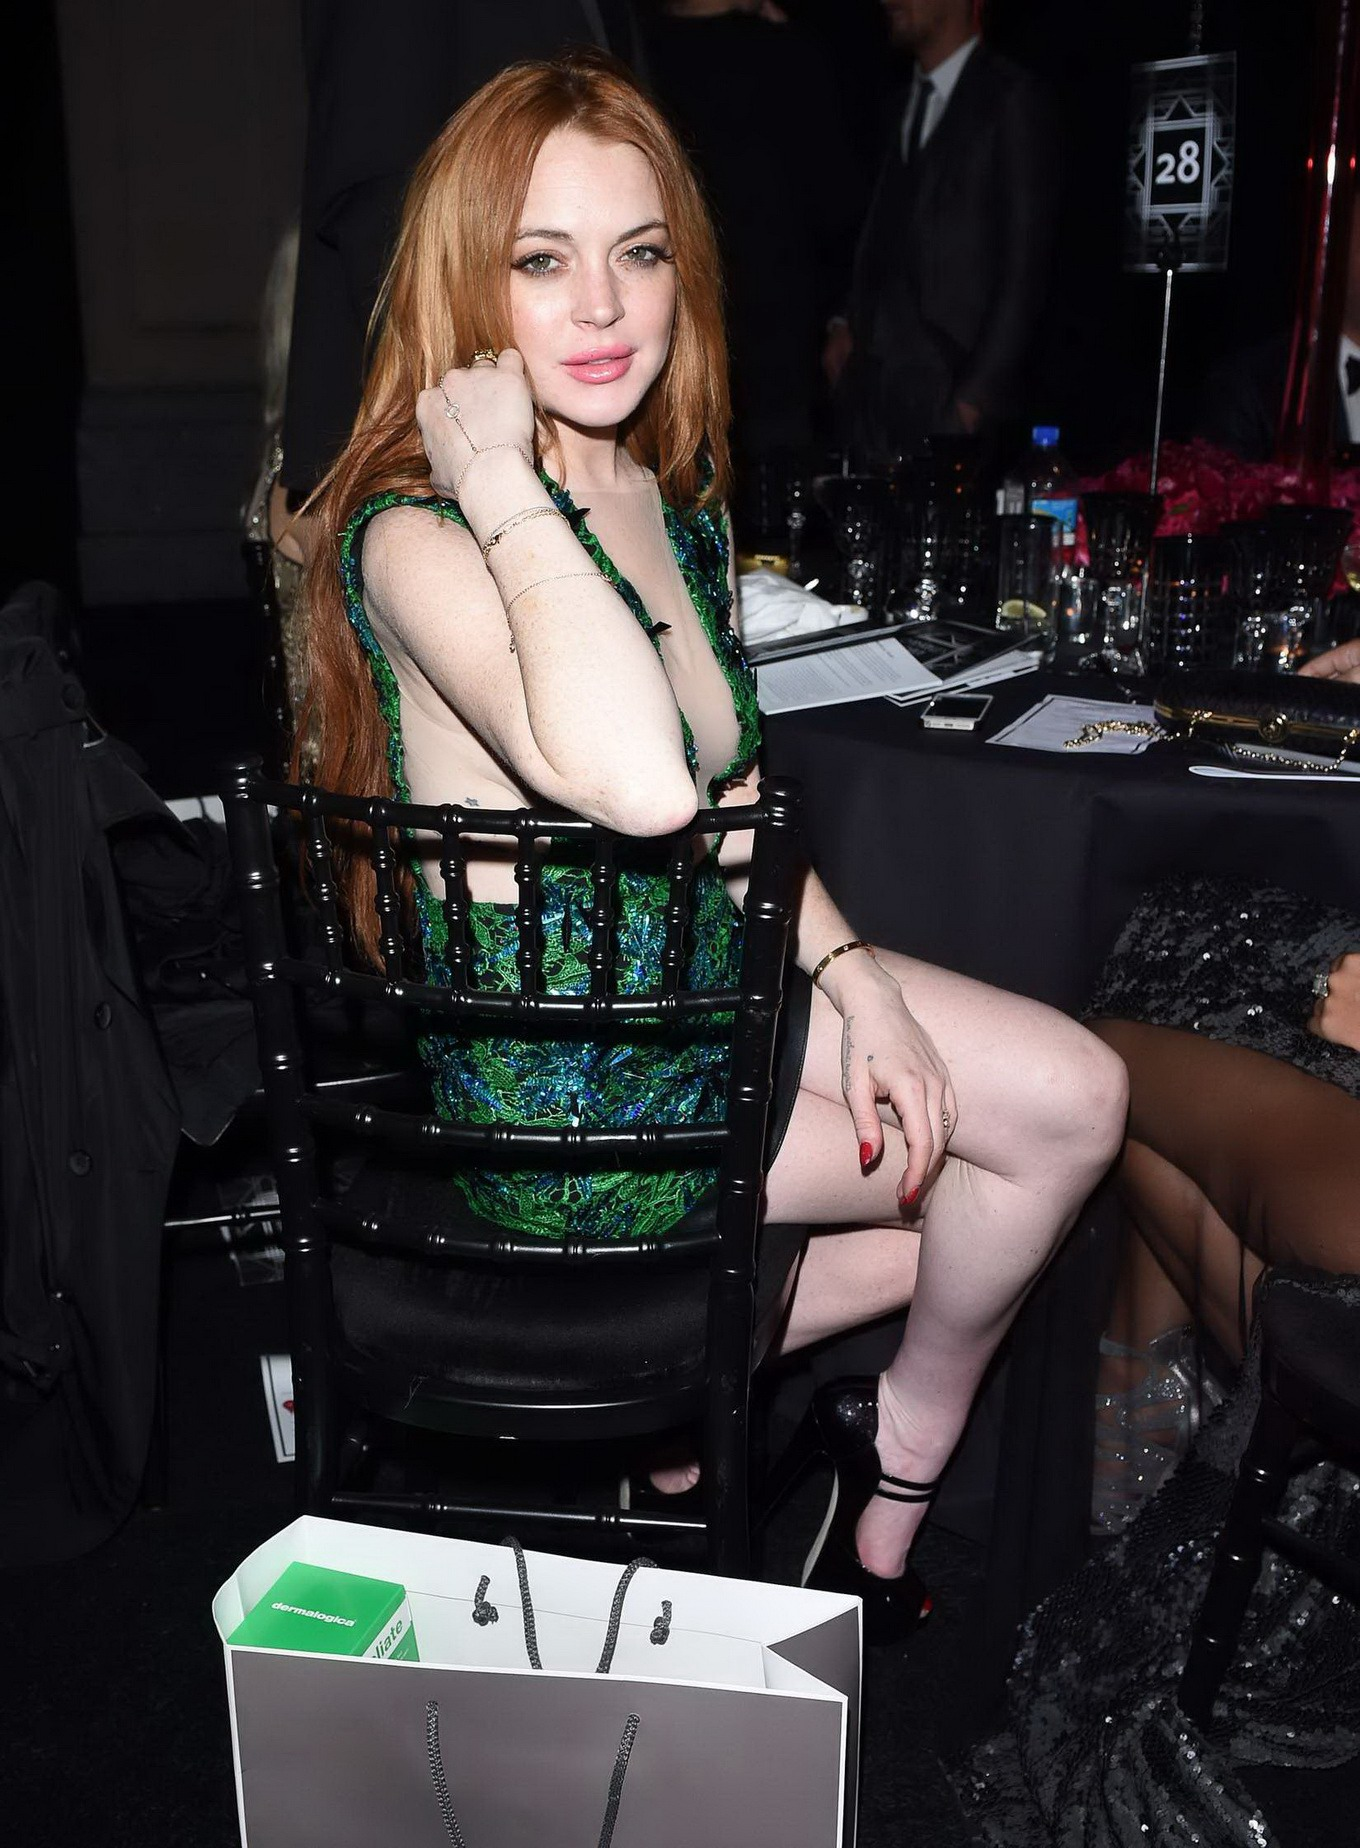 Lindsay lohan hot red carpet pictures, photos, images pics